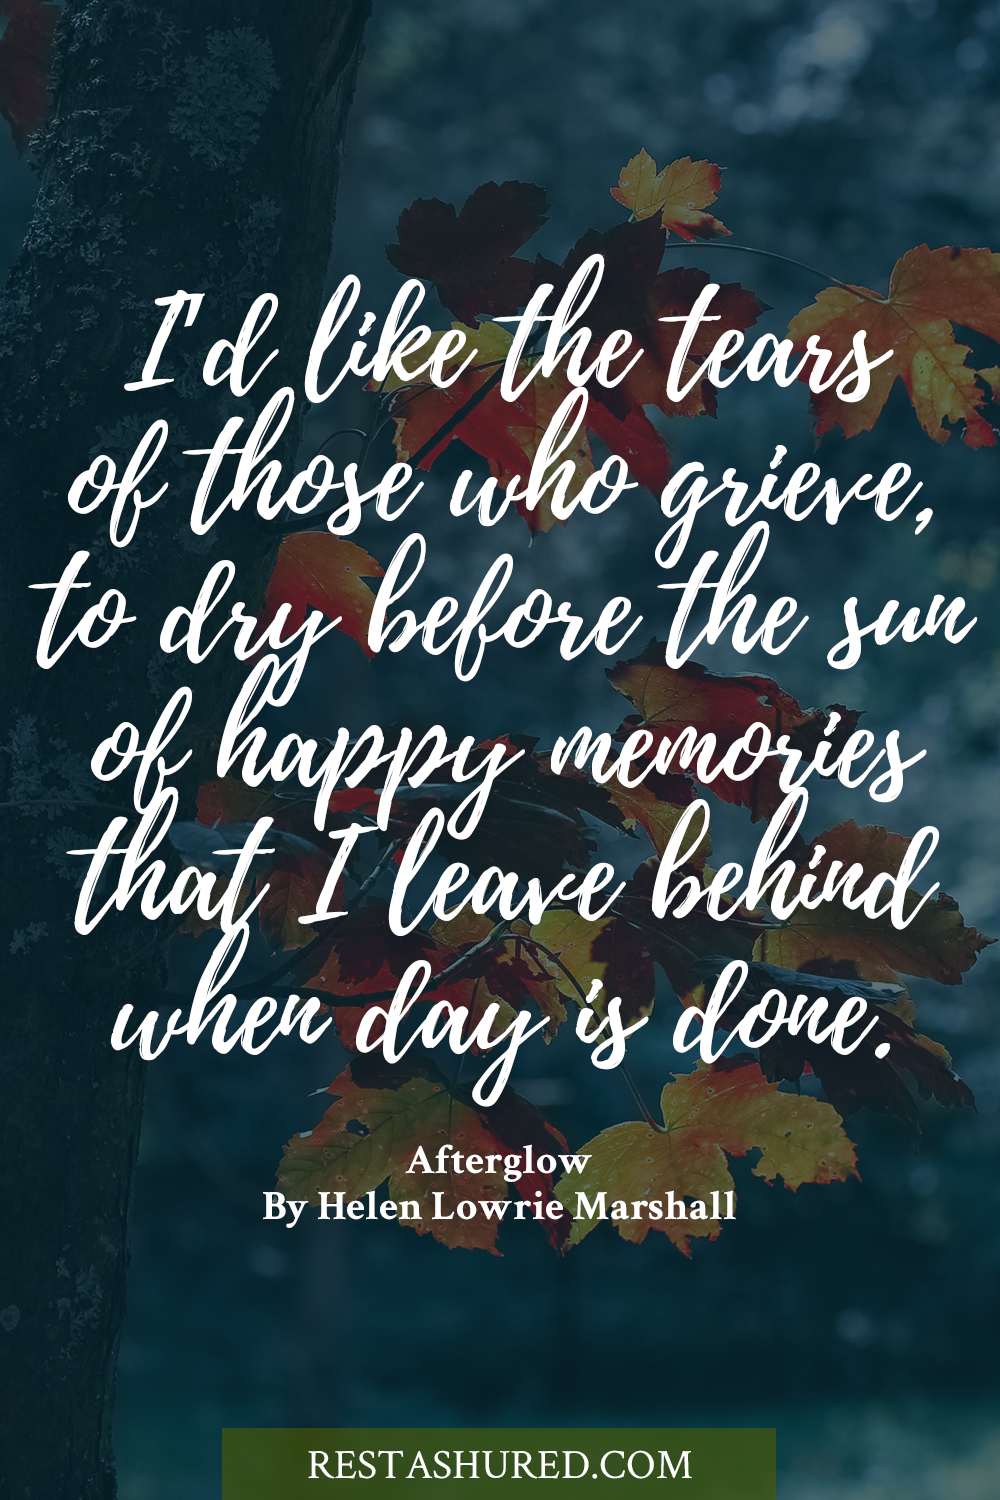 Photo of Quote stating I'd like the tears of those who grieve to dry before the sun of happy memories that I leave behind when day is done.